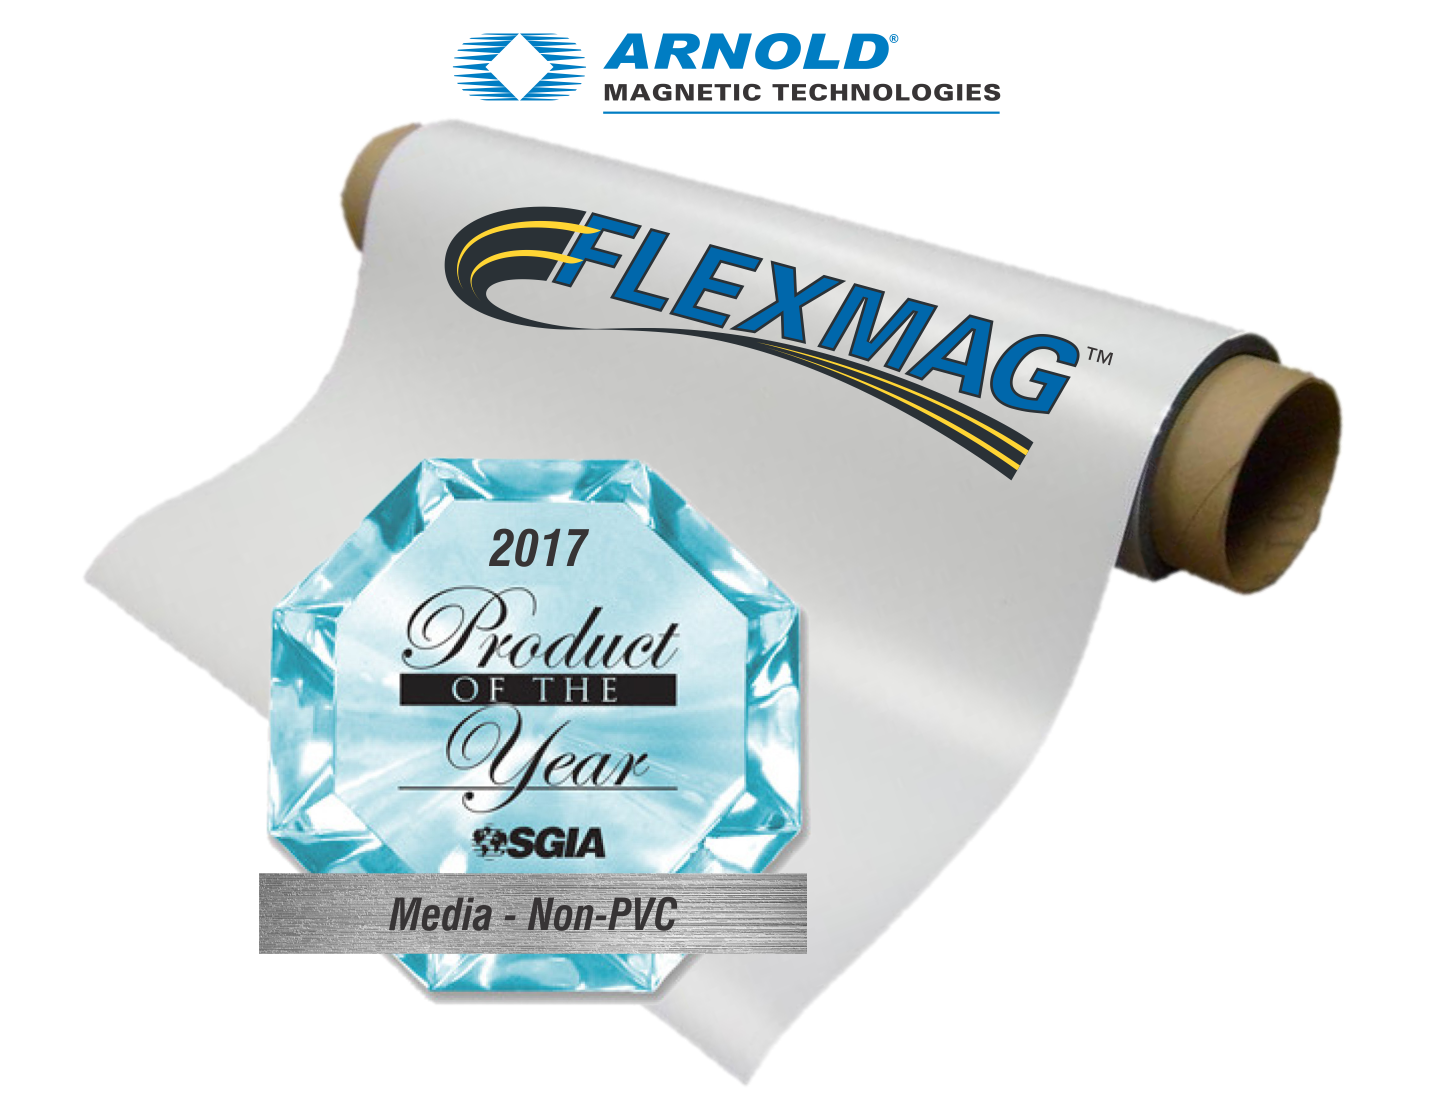 Arnold Magnetic Technologies Flexmag Wins SGIA Product of the Year 2017.png